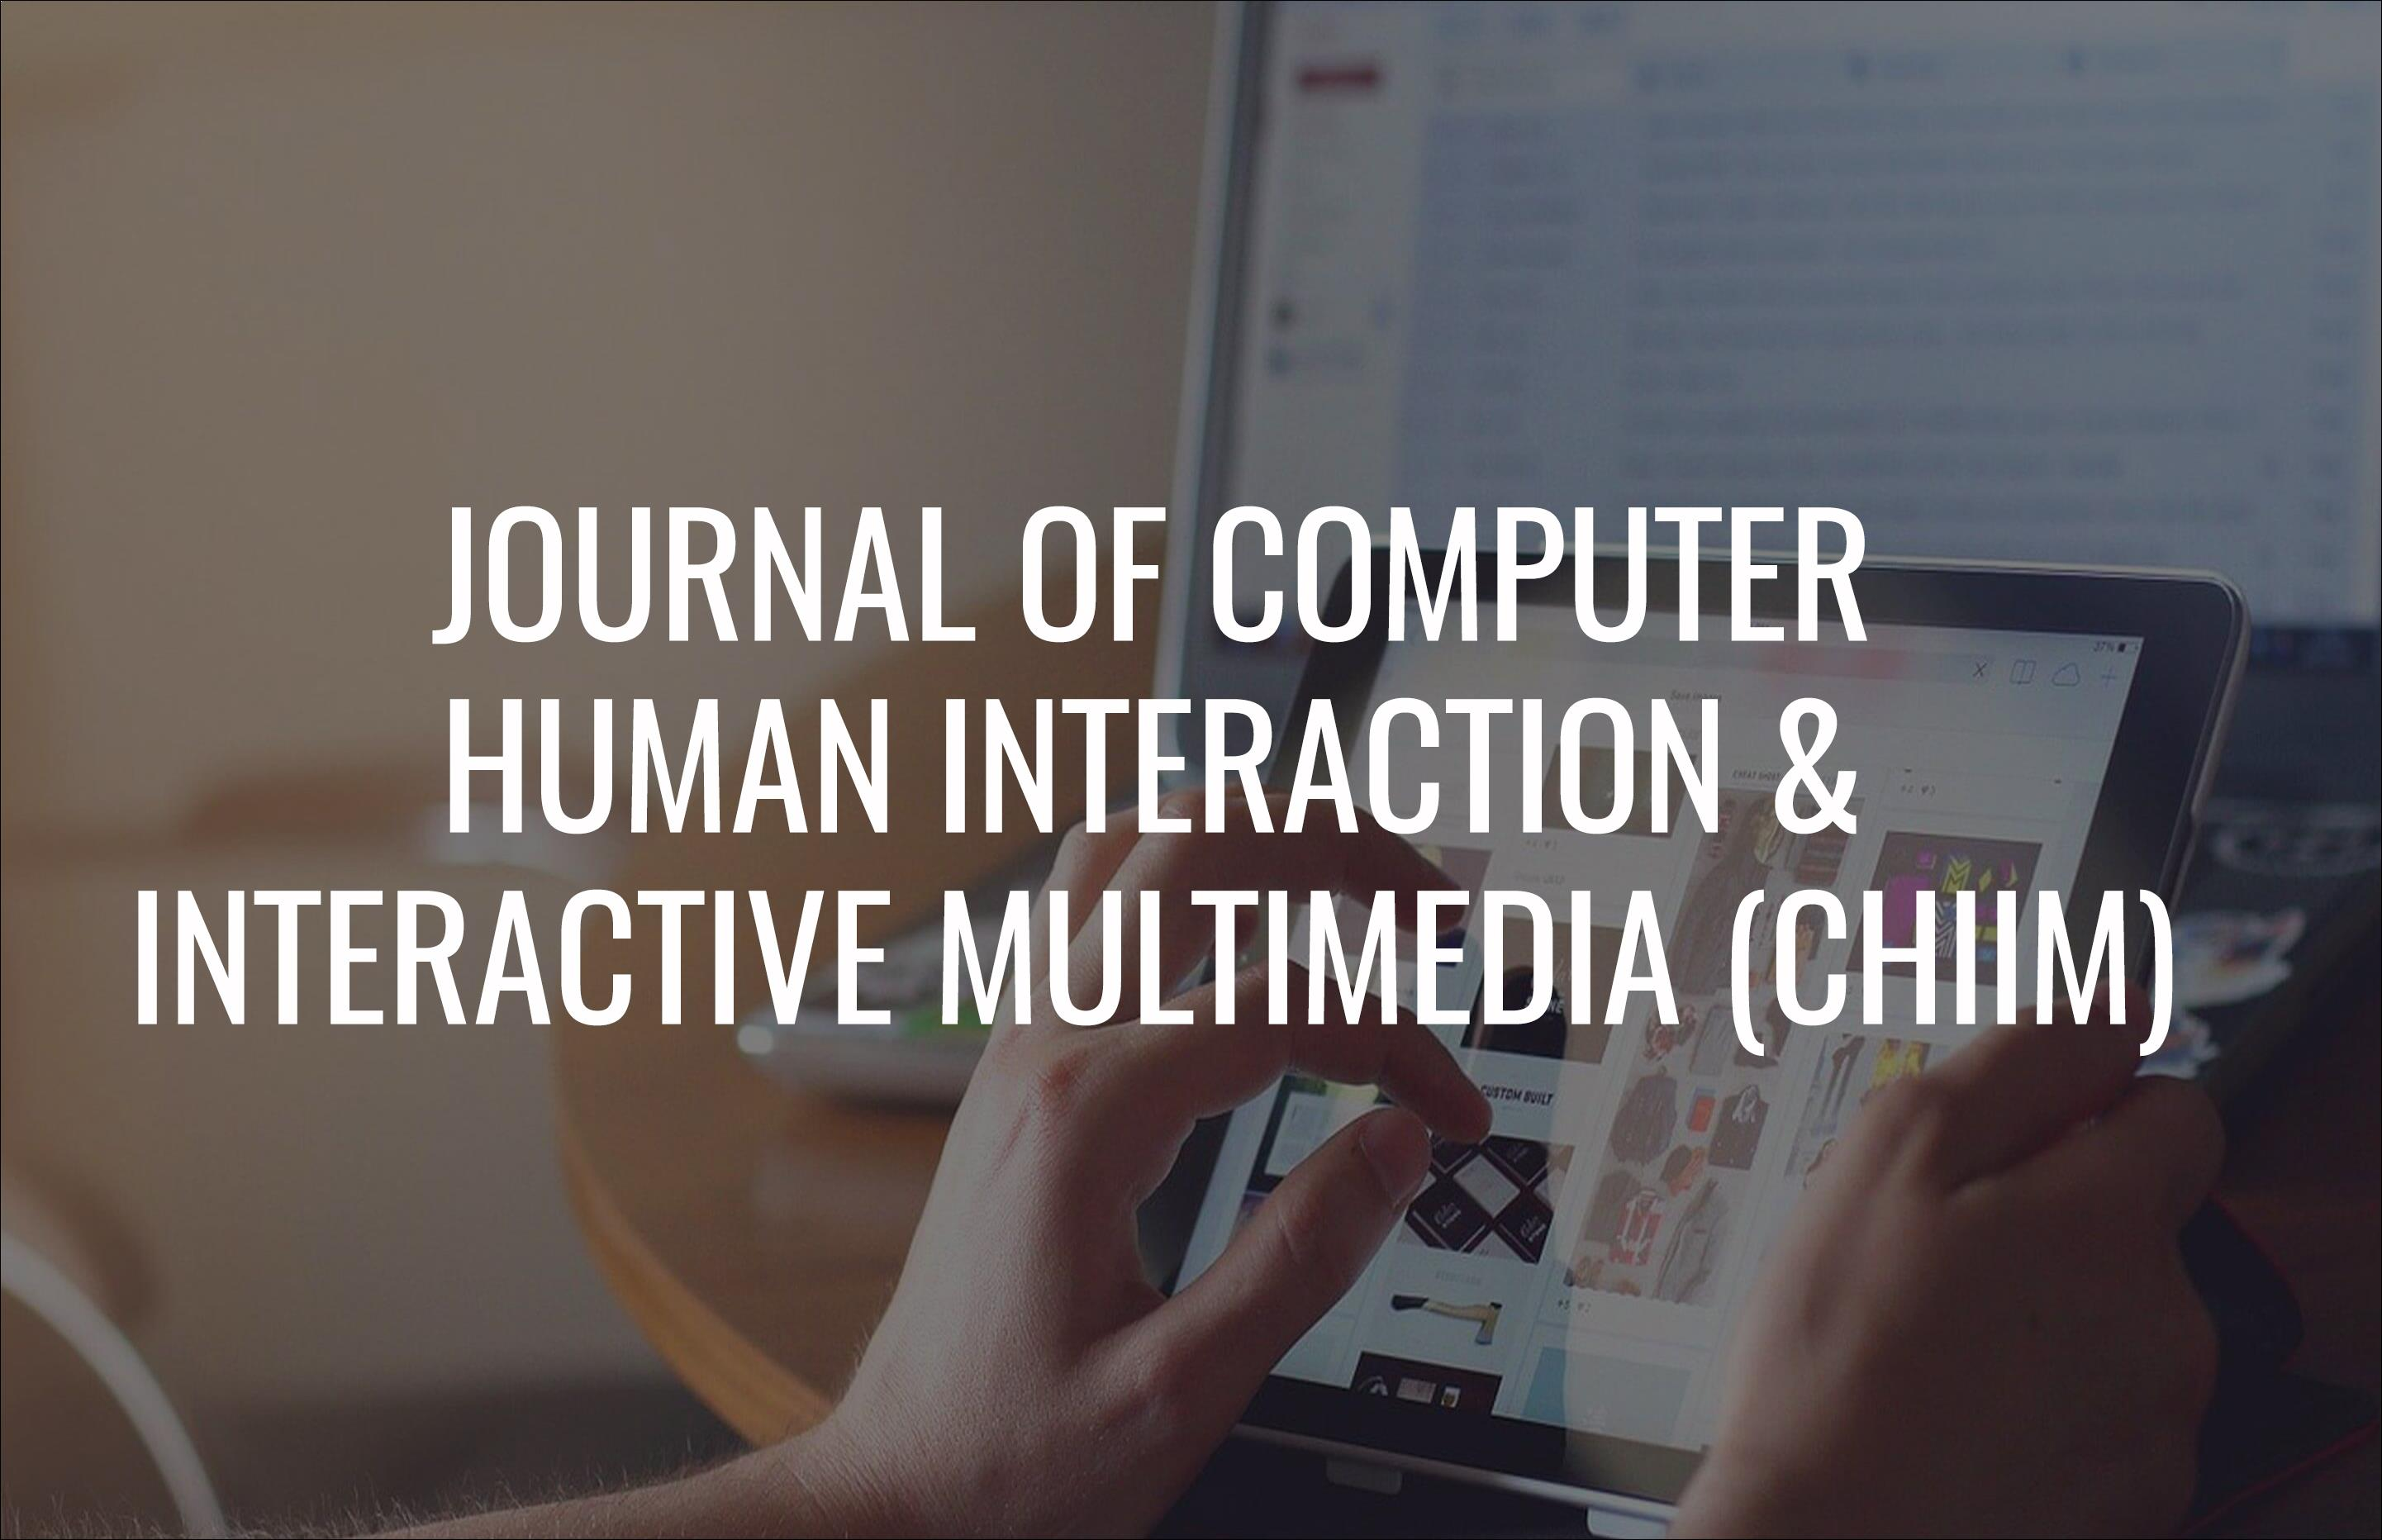 Journal of Computer Human Interaction and Interactive Multimedia (CHIIM)